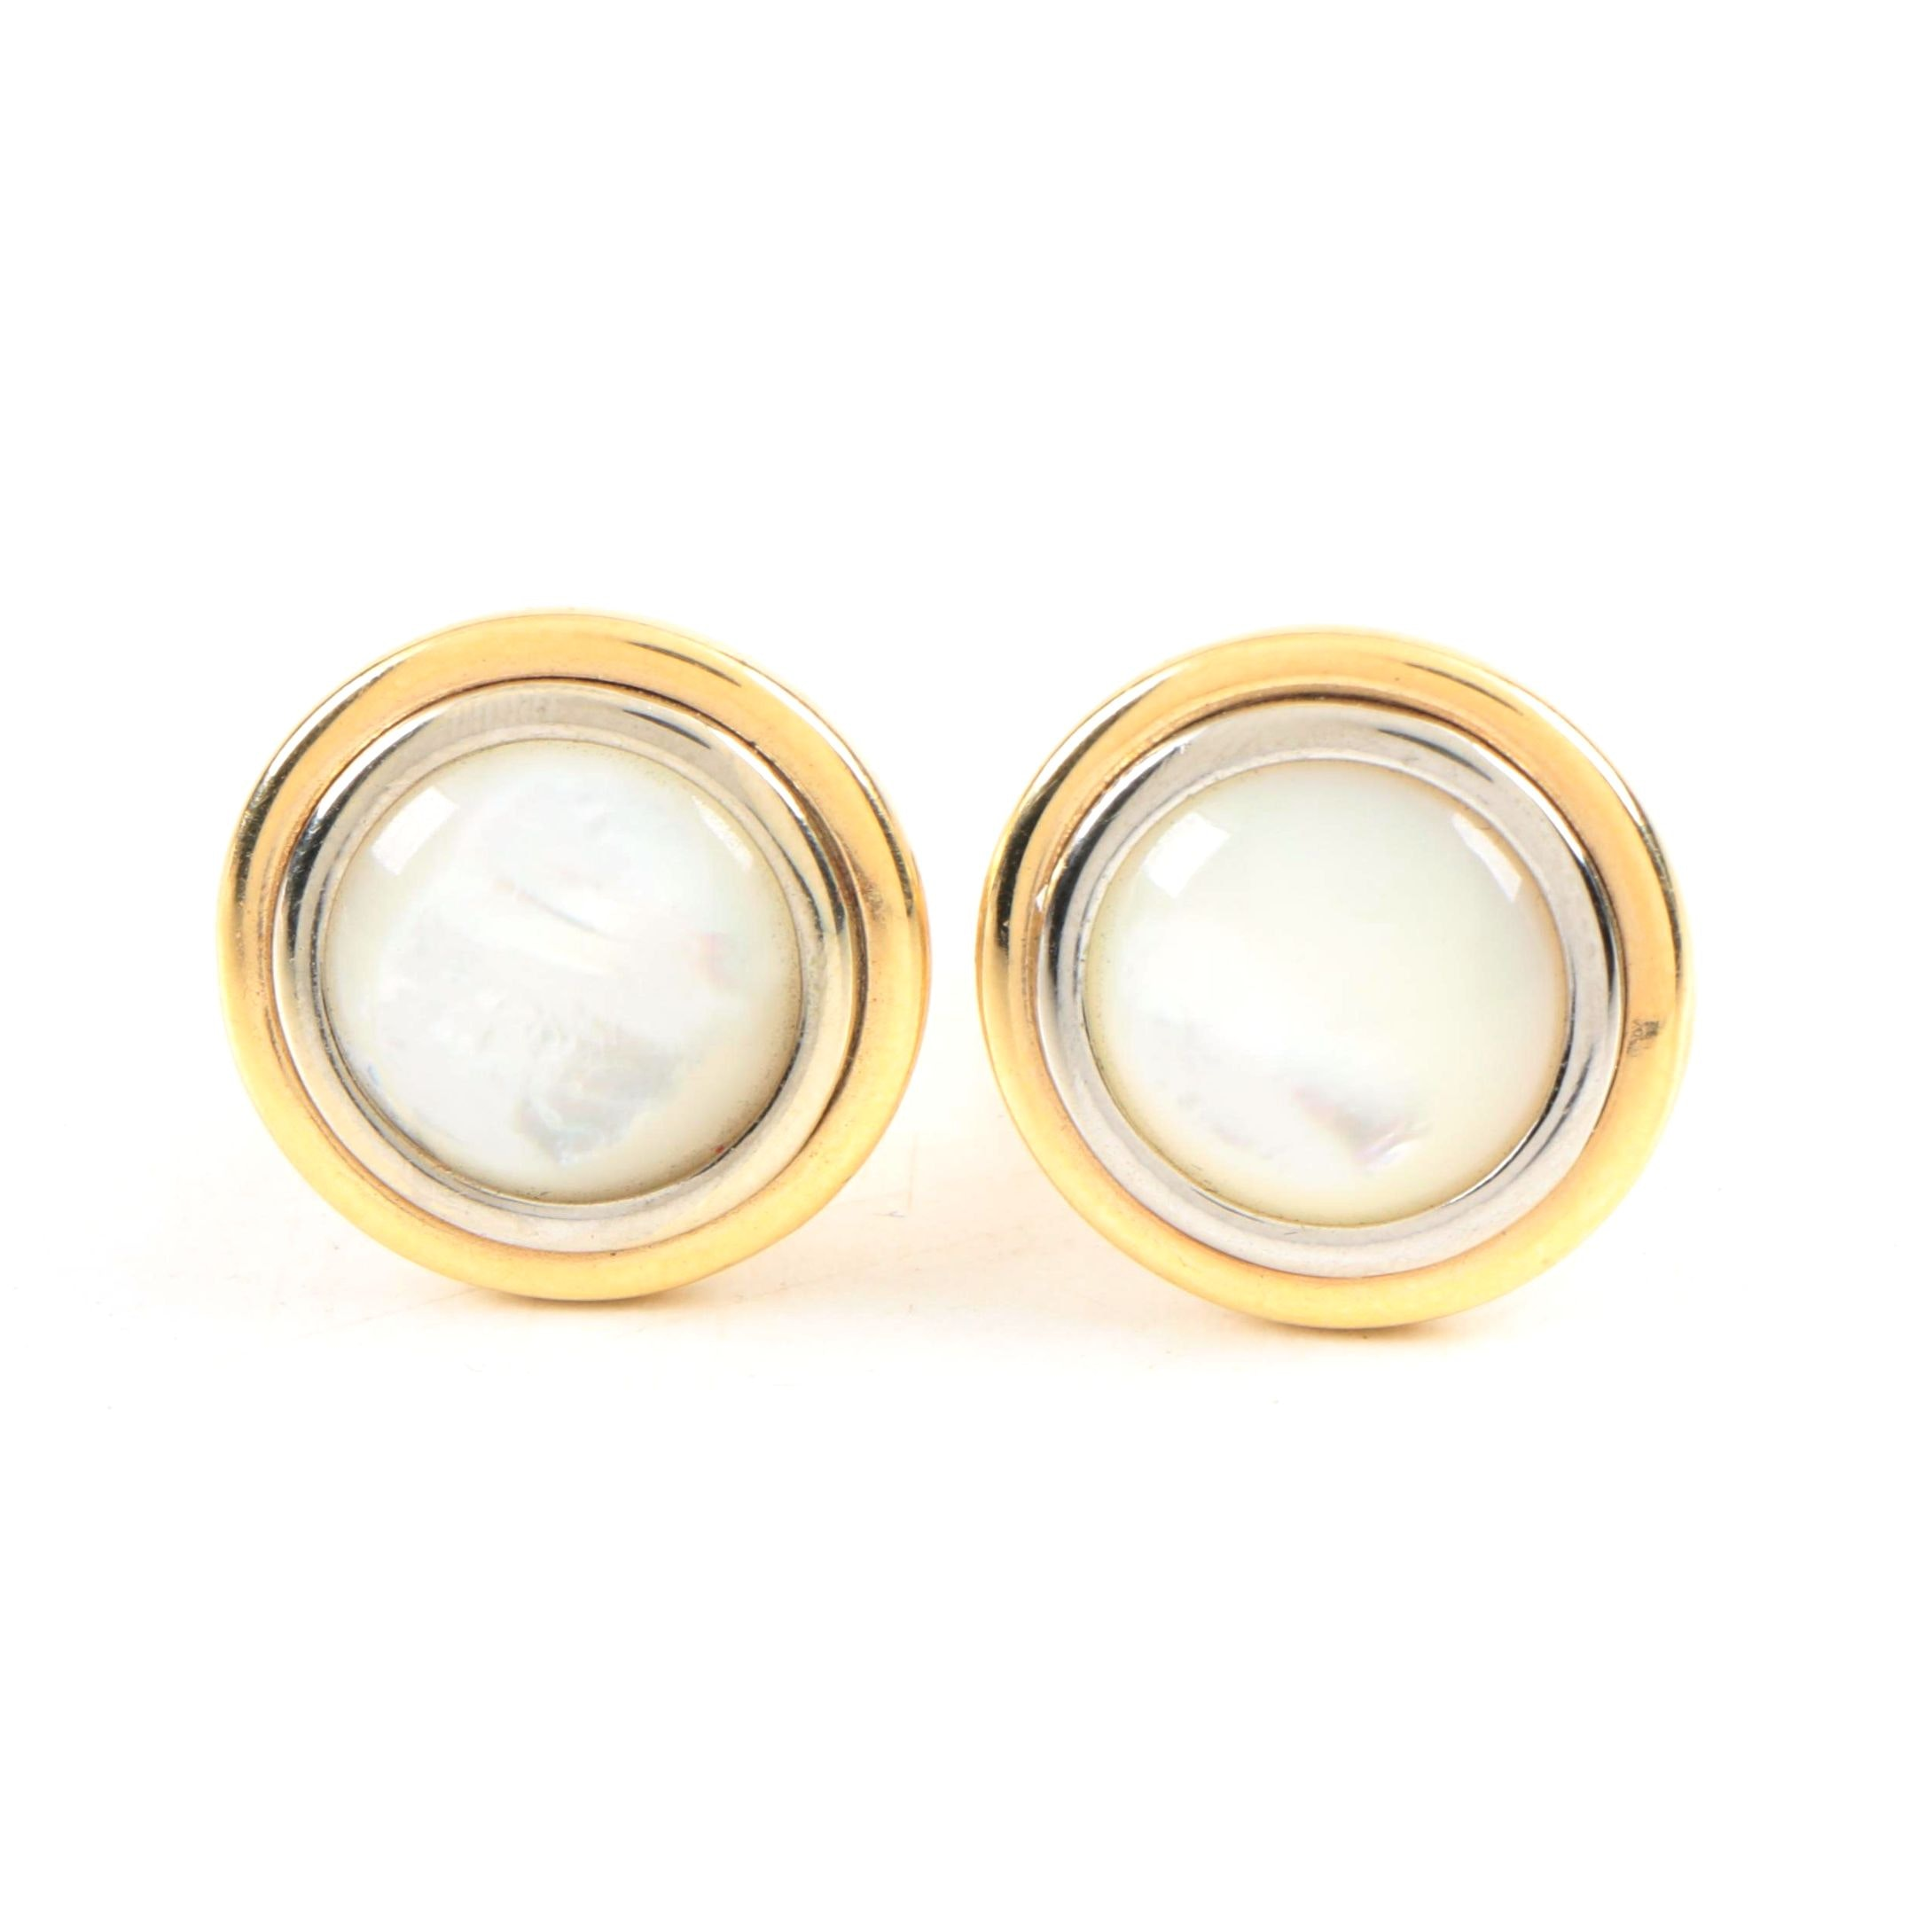 14K Yellow Gold and Mother of Pearl Cufflinks